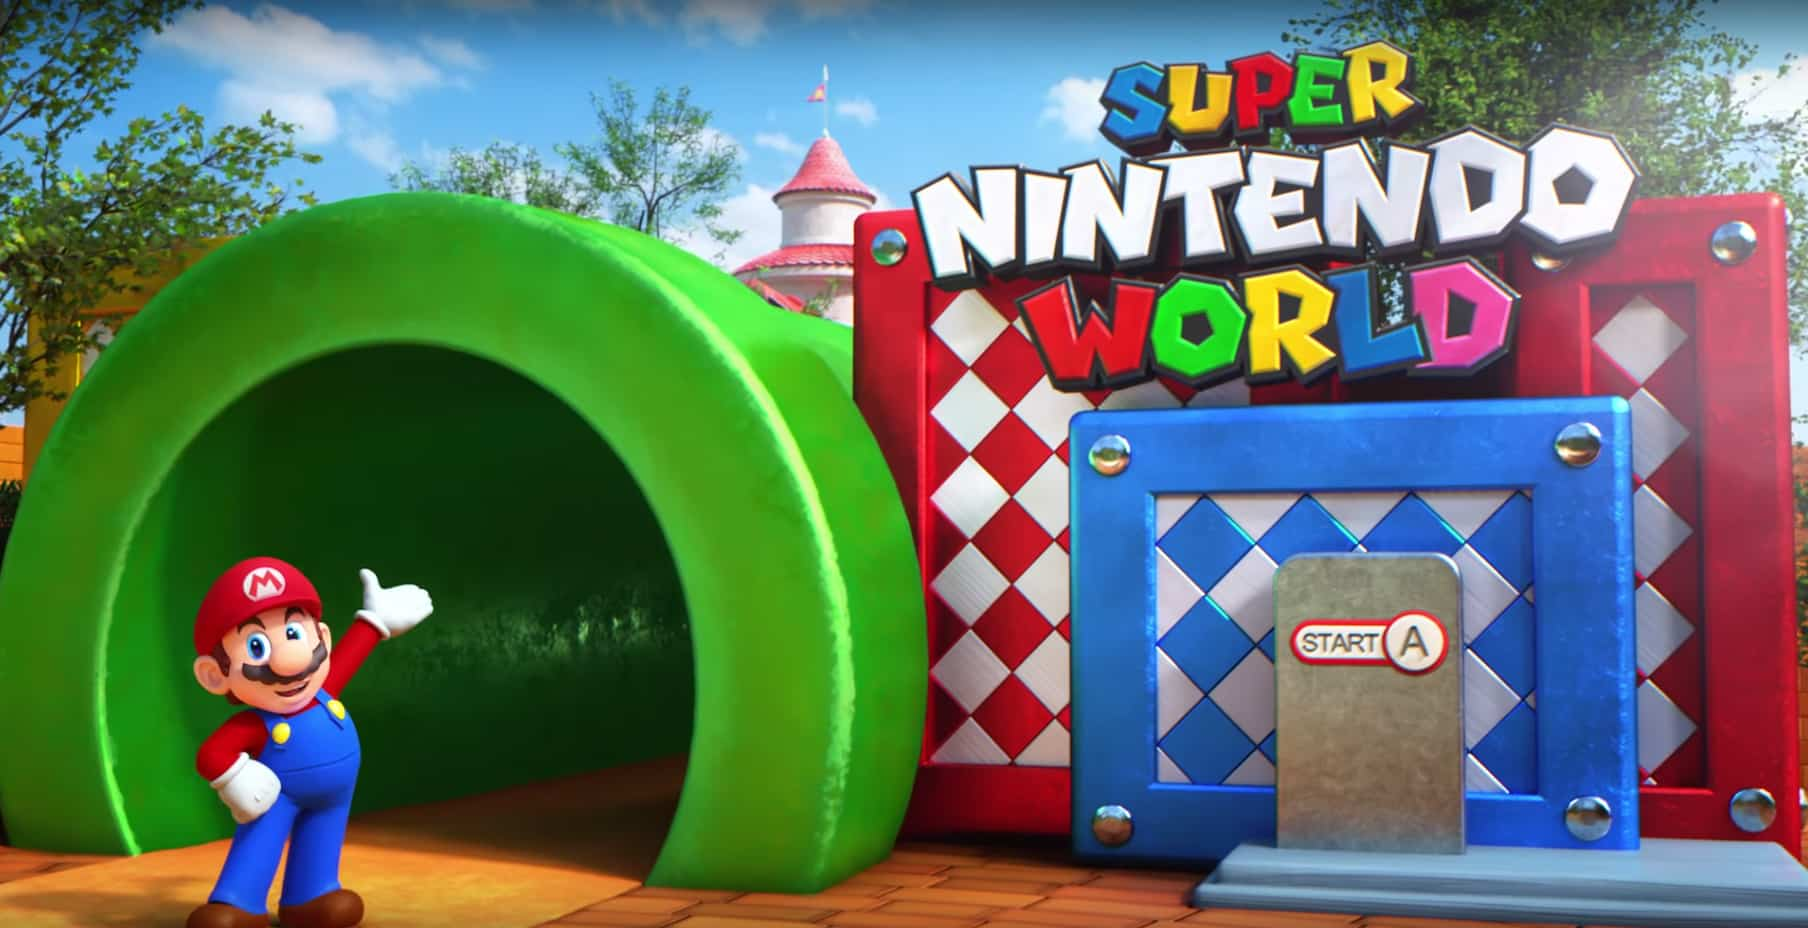 Mario Kart announced for Universal's Super Nintendo World